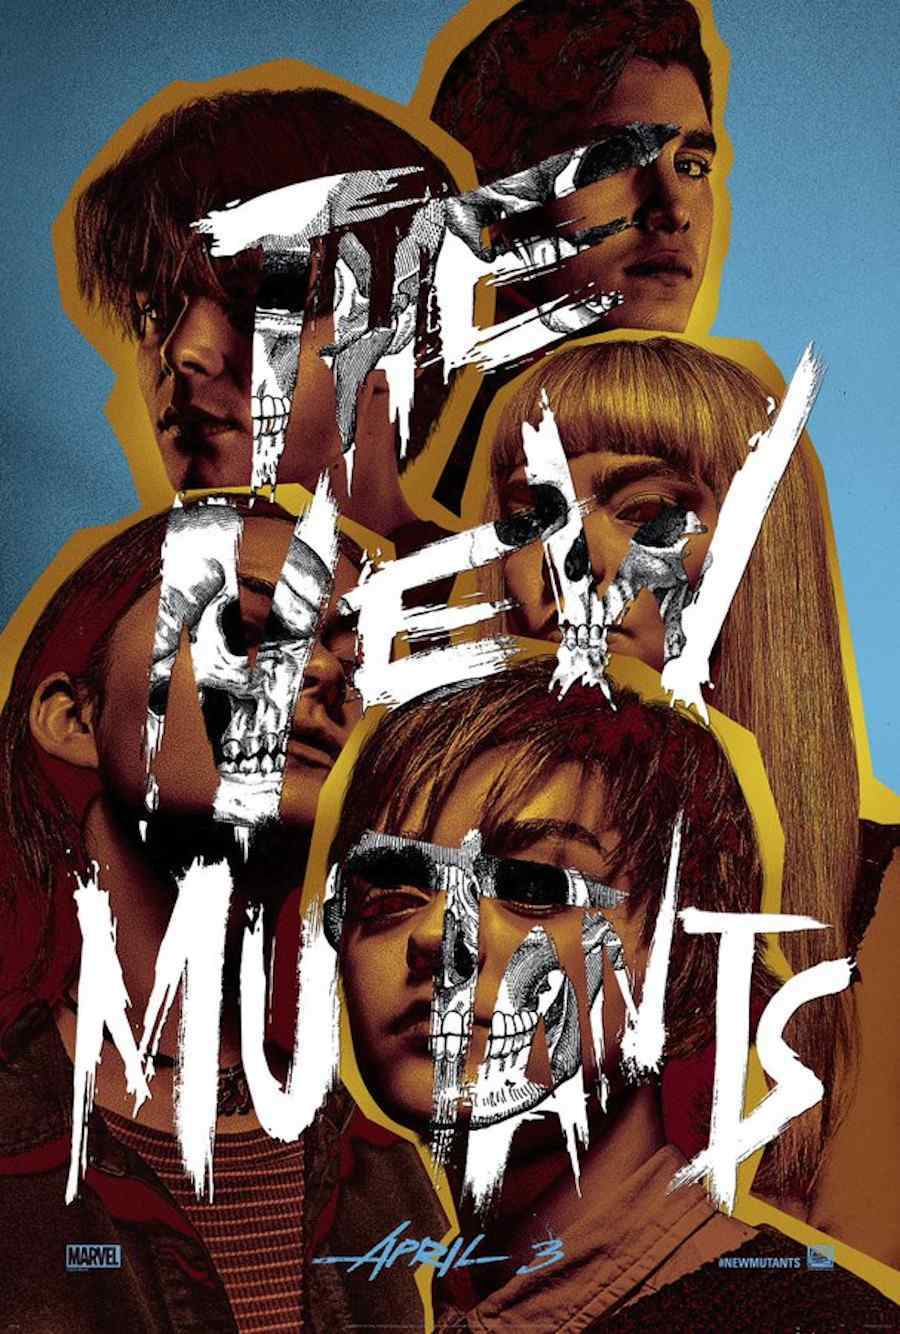 The New Mutants 20th Century Studios